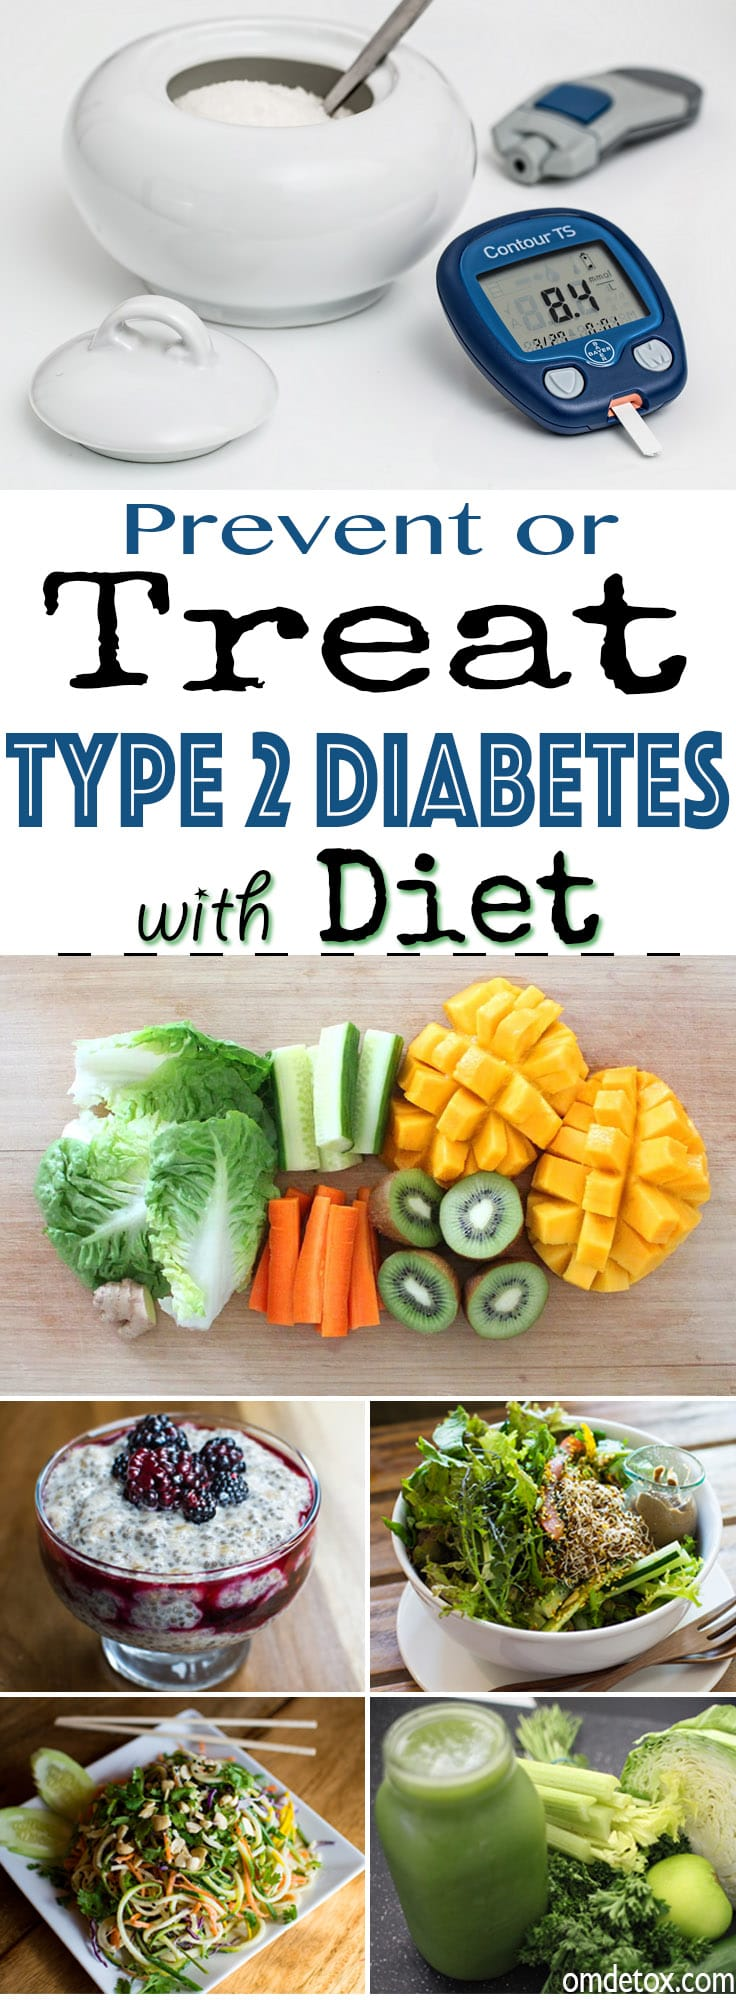 How to treat type 2 Diabetes with Diet. Yes you can treat Diabetes with food, discover how her. Milton did it, so can you.